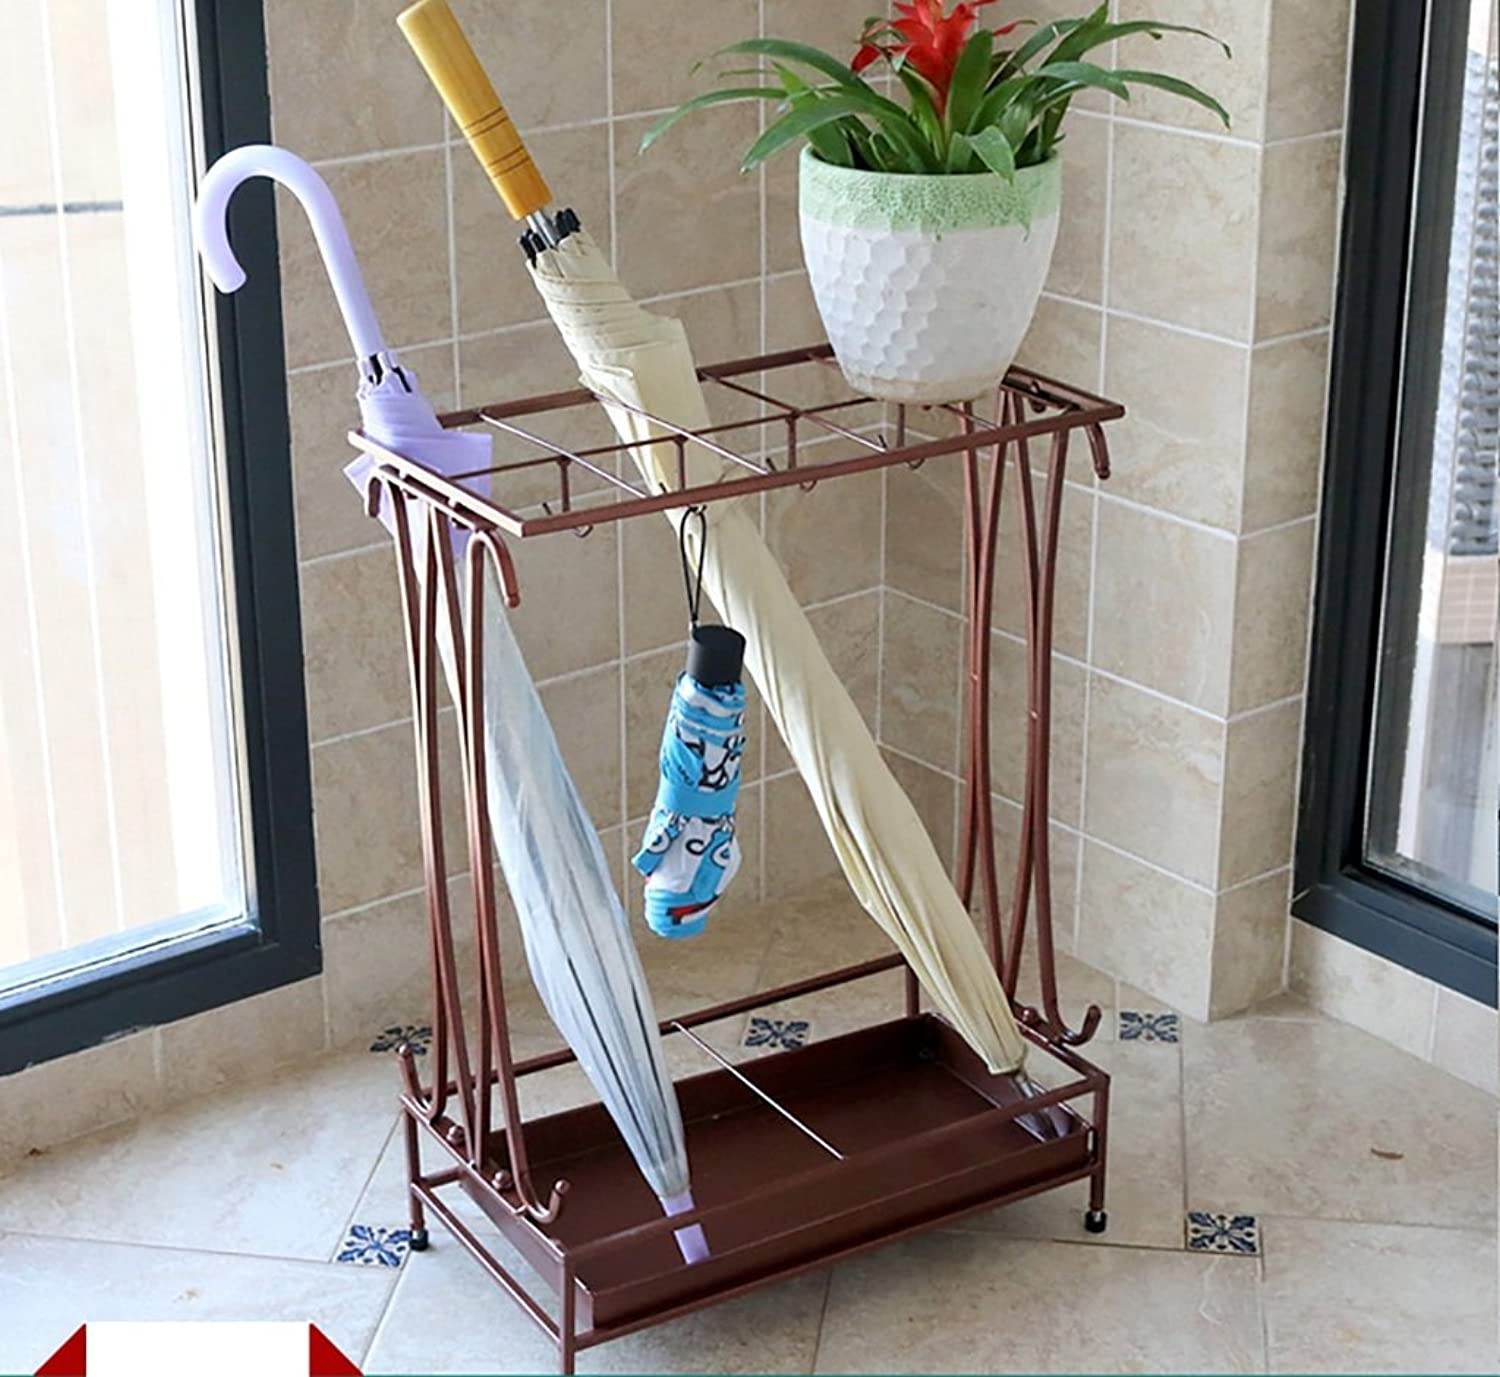 Creative Umbrella Rack Hotel Lobby Household Iron Umbrella Umbrella Bucket Barrel Storage Floor Floor Umbrella Shelf (color   Brown)